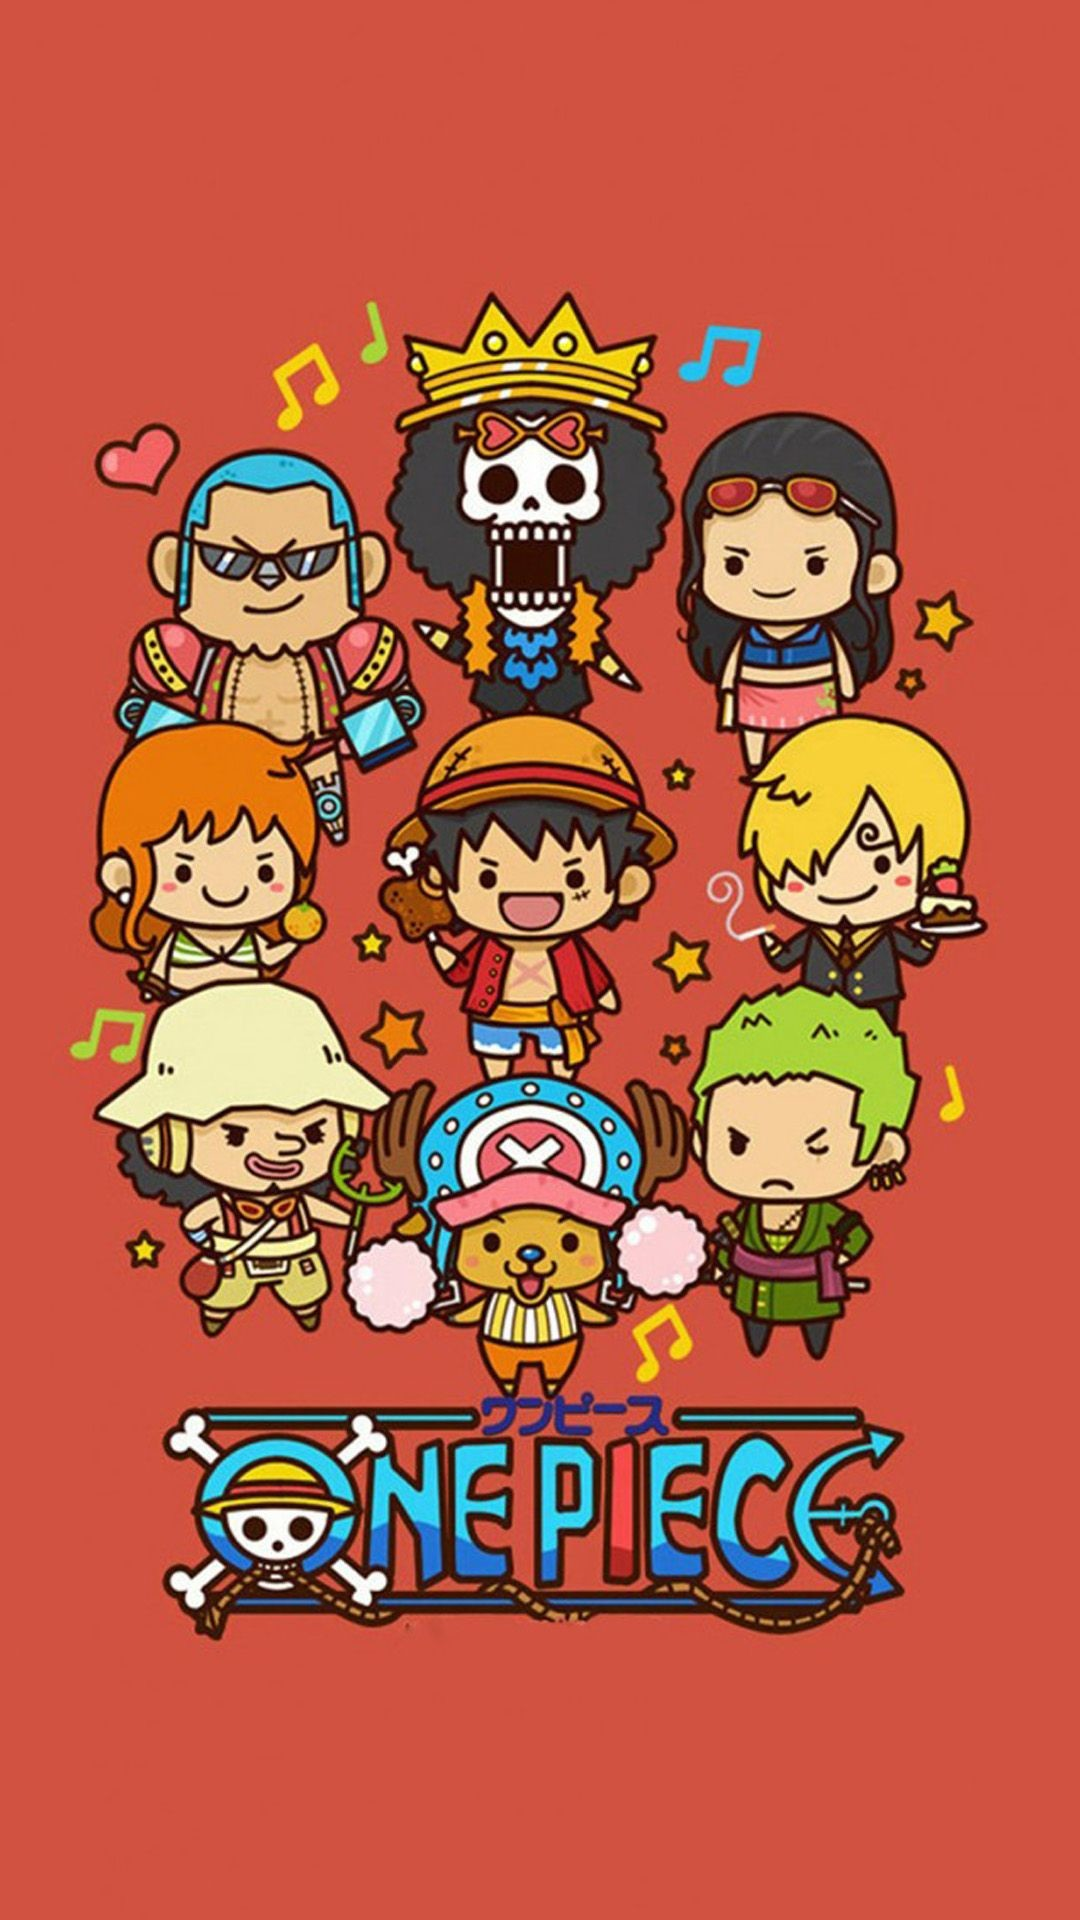 Res: 1080x1920, Cute Lovely One Piece Cartoon Poster iPhone 6 wallpaper